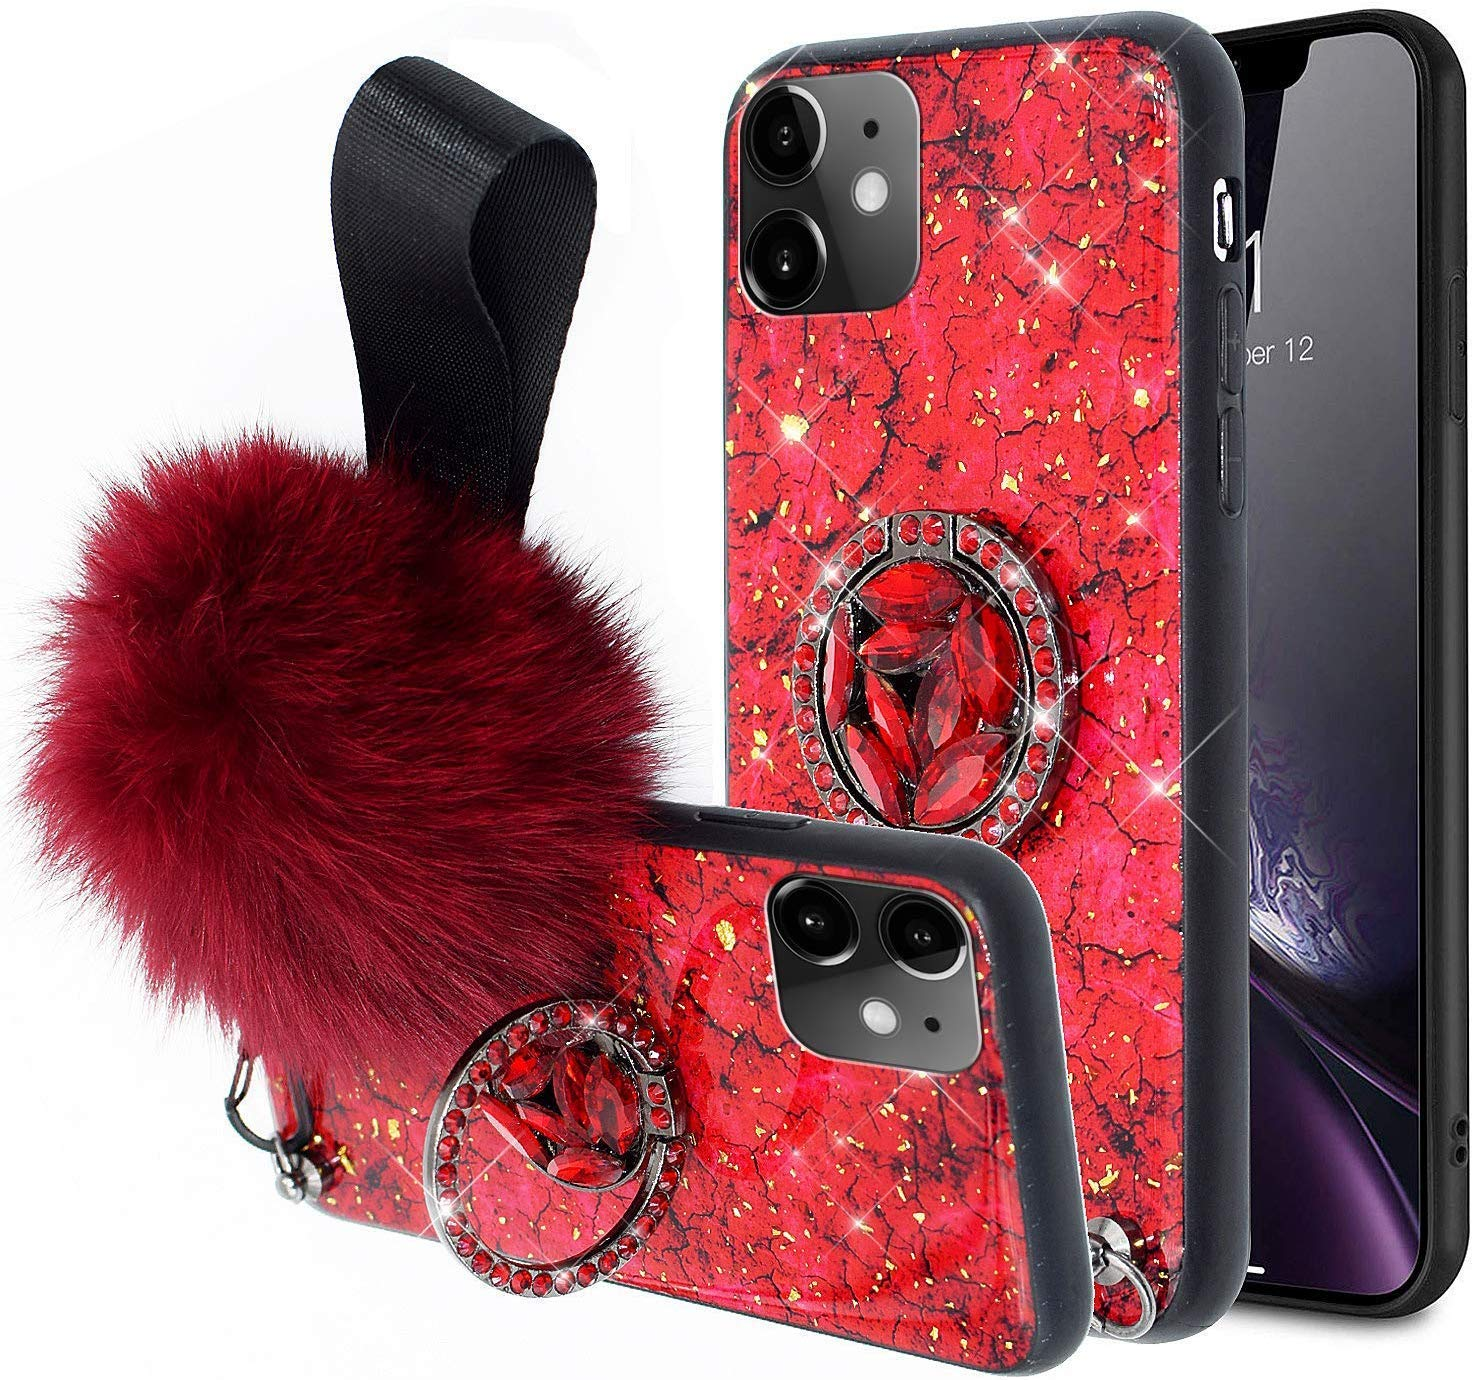 Aulzaju Cover for iPhone 11 6.1 Inch, iPhone 11 Luxury Shiny Cute Case with Ring Stand iPhone 11 Hard Back Raised Edge Marble Hybrid Cover with Soft Furry Ball Strap for Girl Women-Red